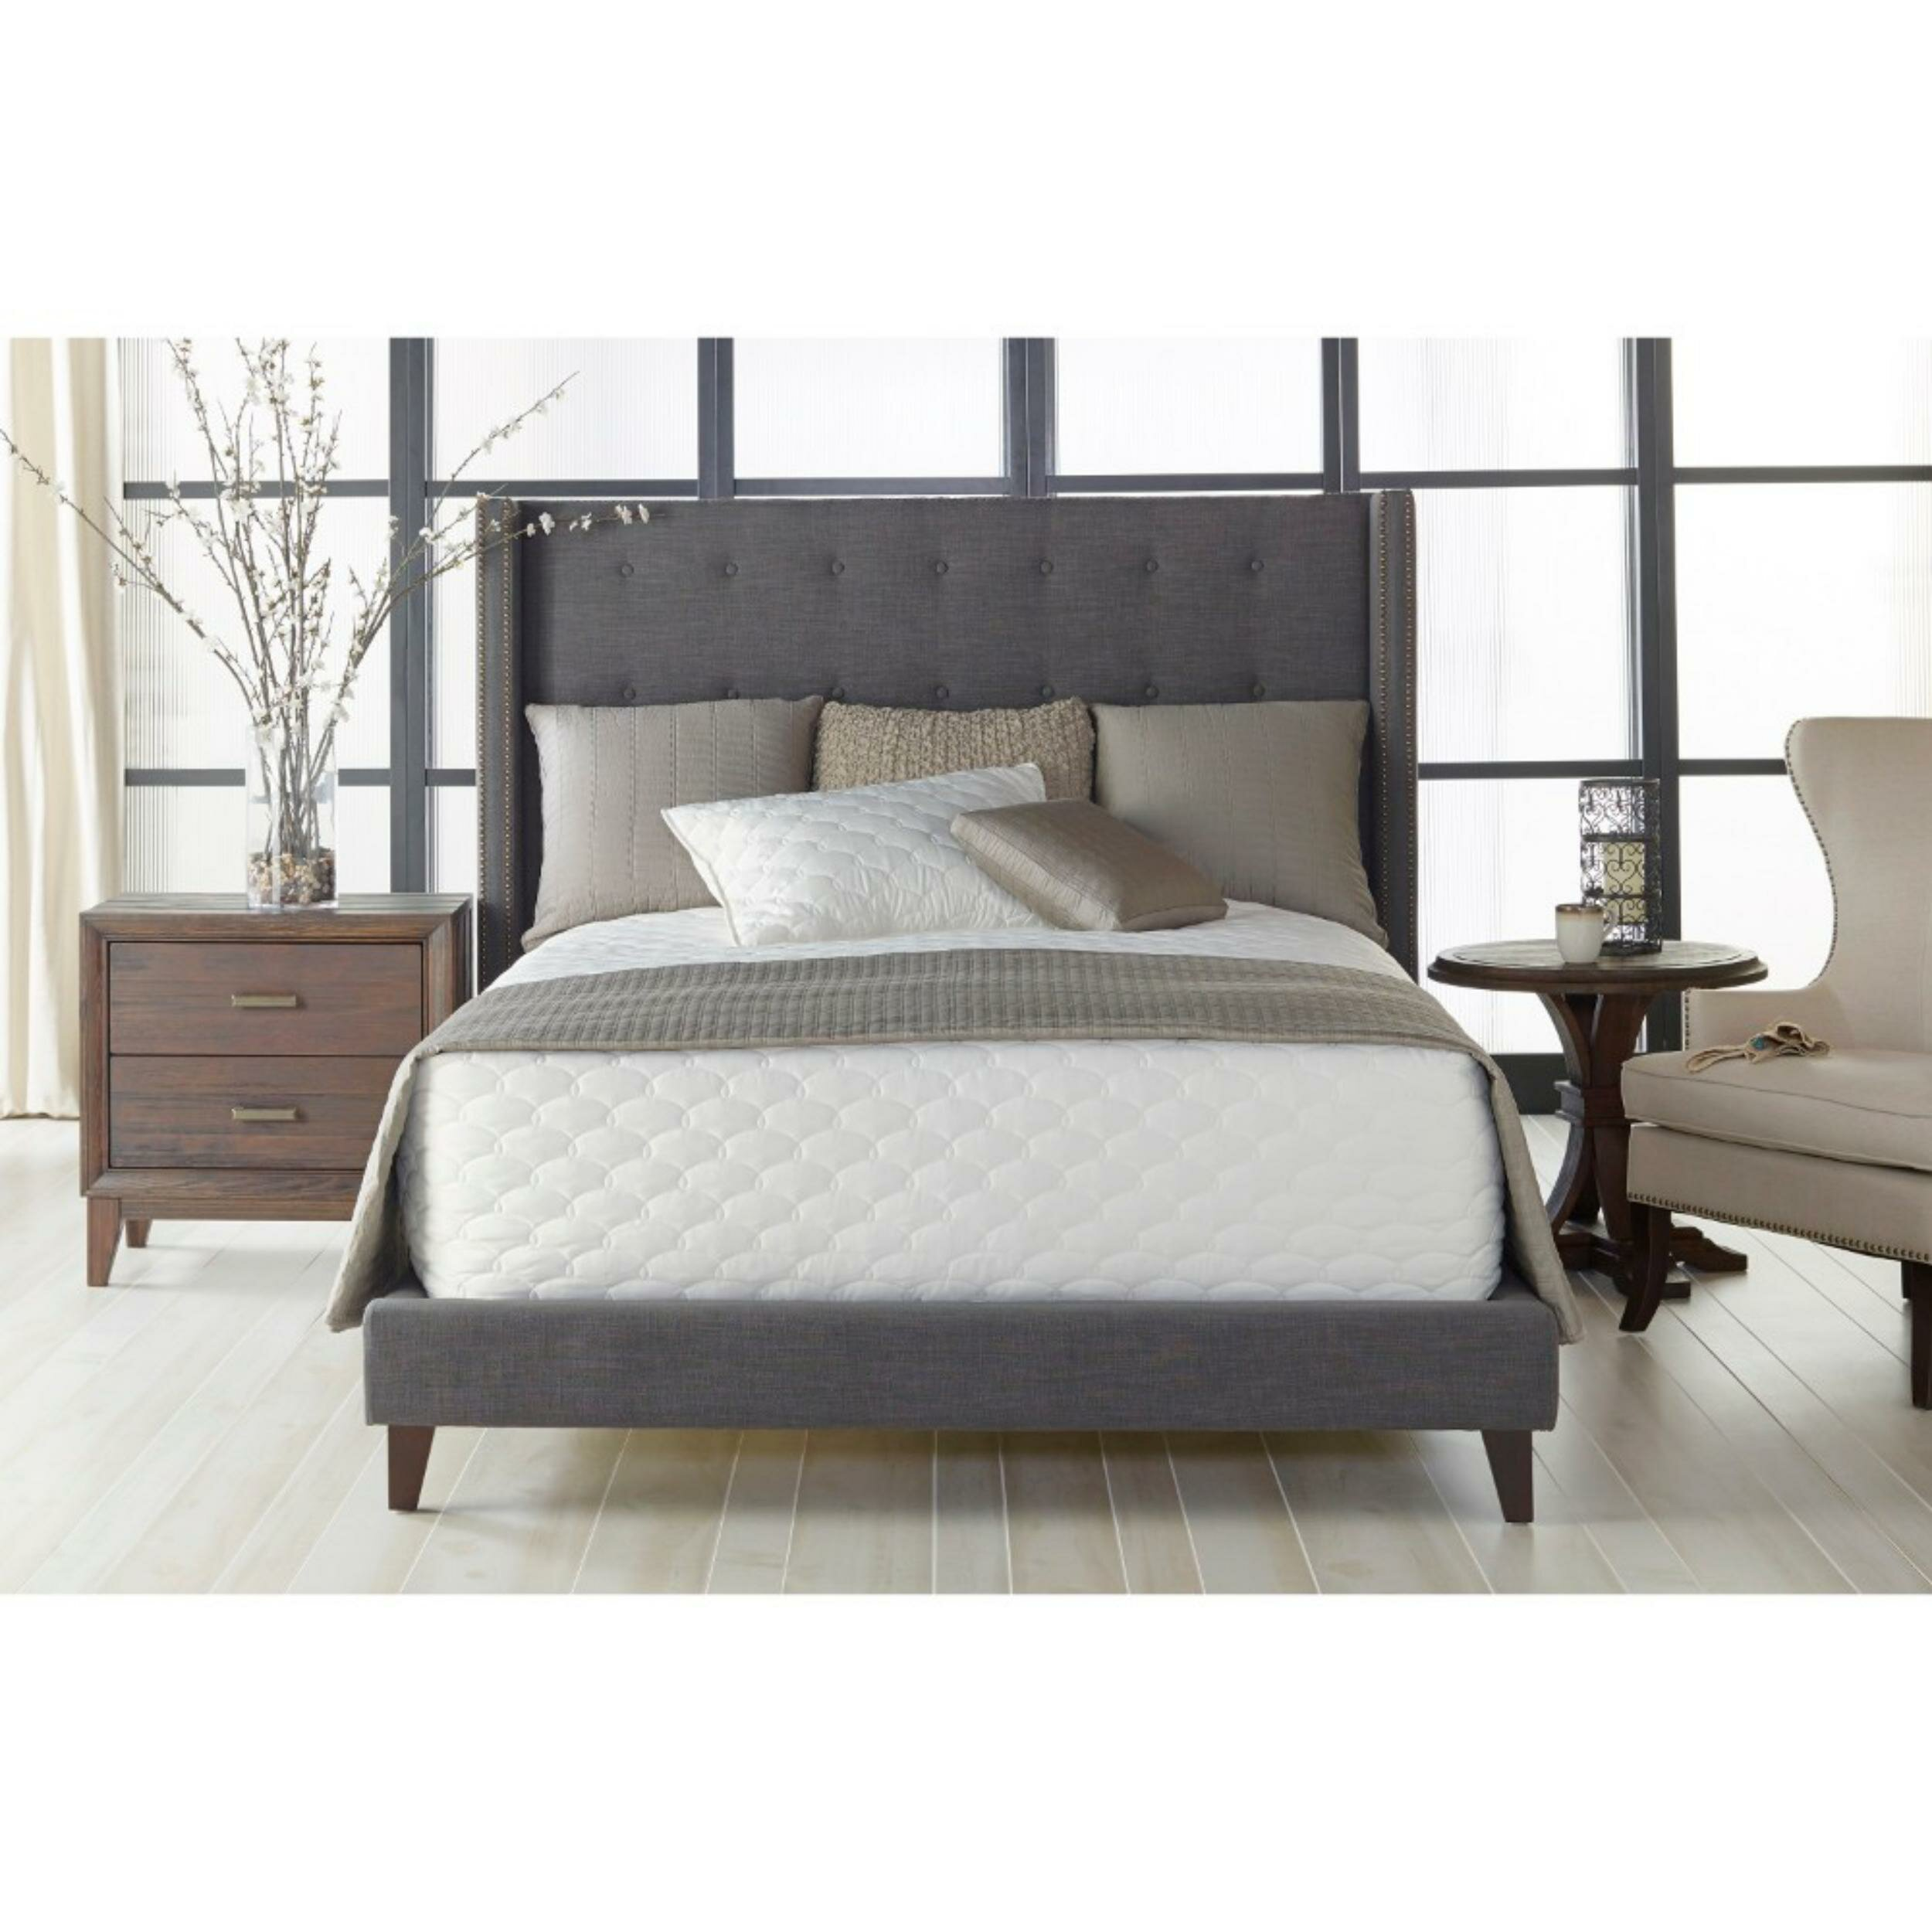 fefb7250455f Red Barrel Studio Standard King Bed With Button Tufted Linen Upholstered  Headboard, Grey | Wayfair.ca